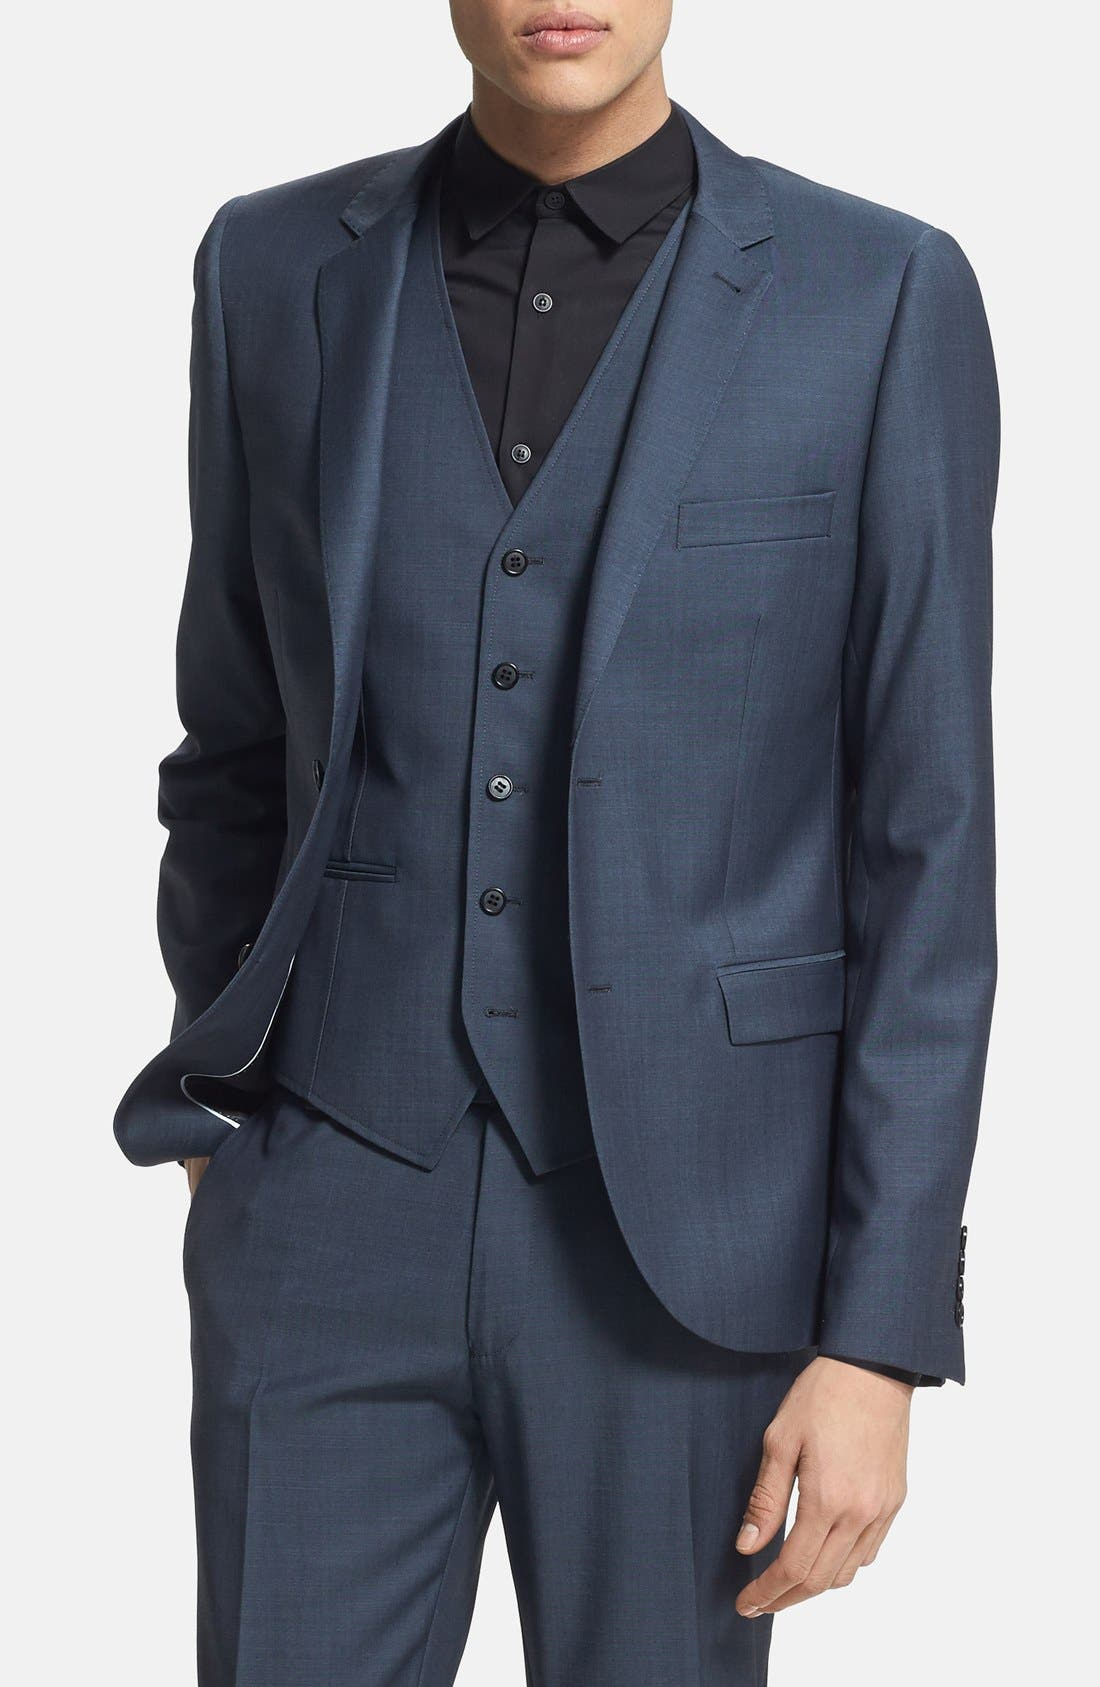 Alternate Image 1 Selected - Topman Skinny Fit Navy Suit Jacket